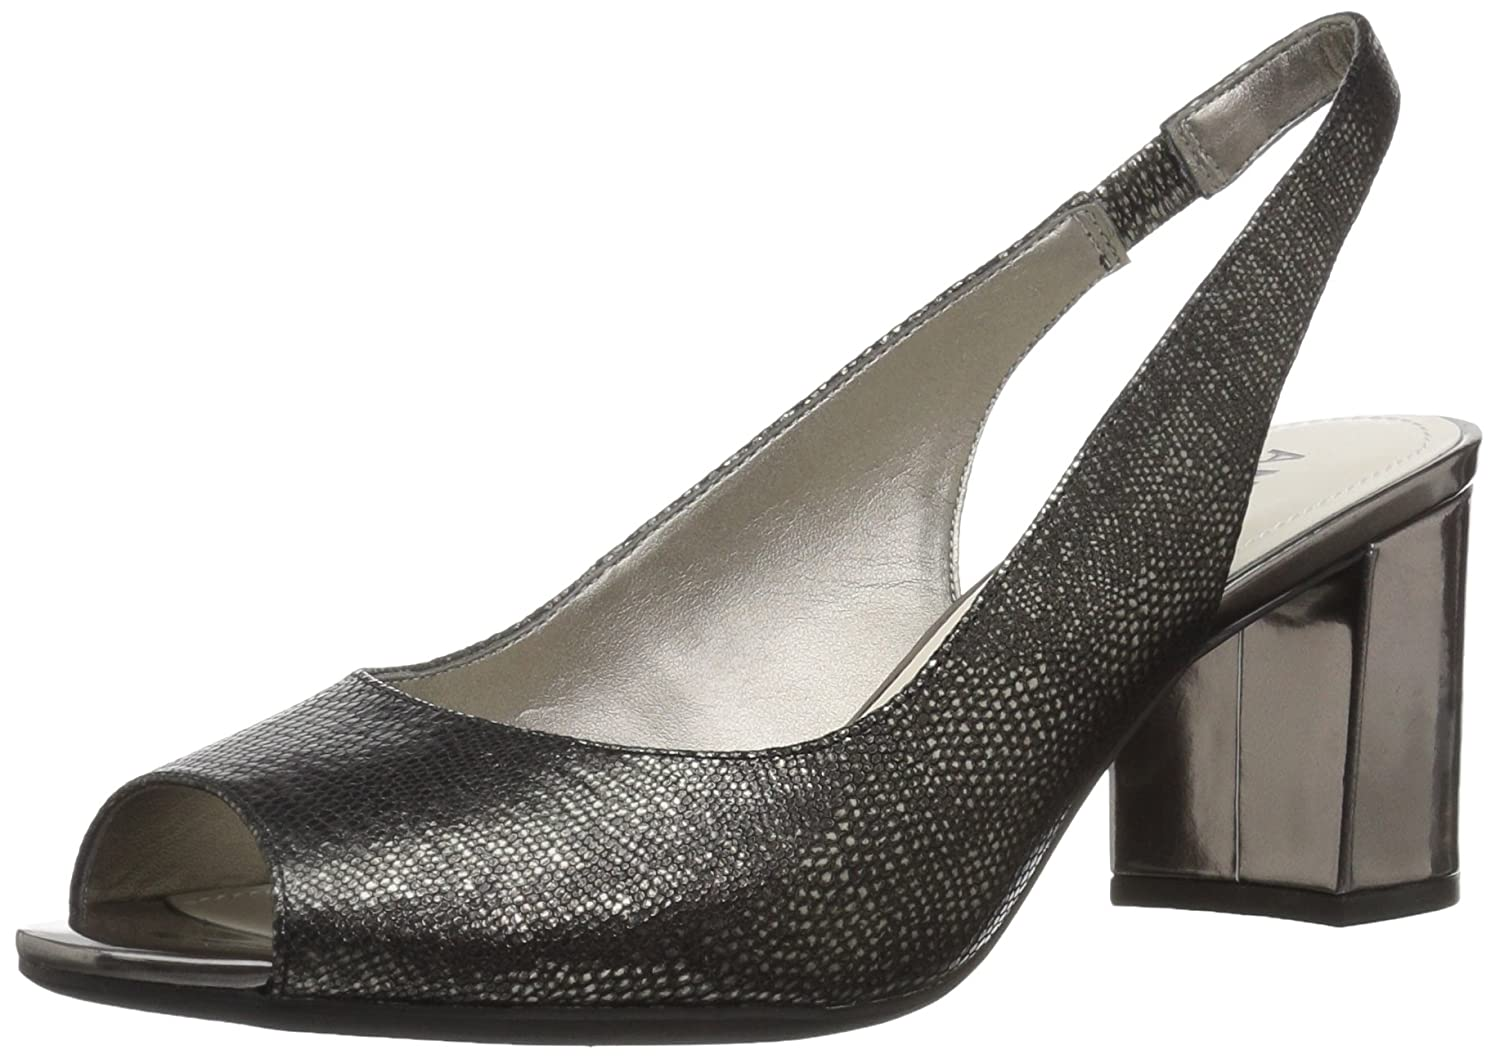 Anne Klein Women's Maurise Peep Toe Sling-Back Pump B0059485KY 6 B(M) US|Pewter Reptile